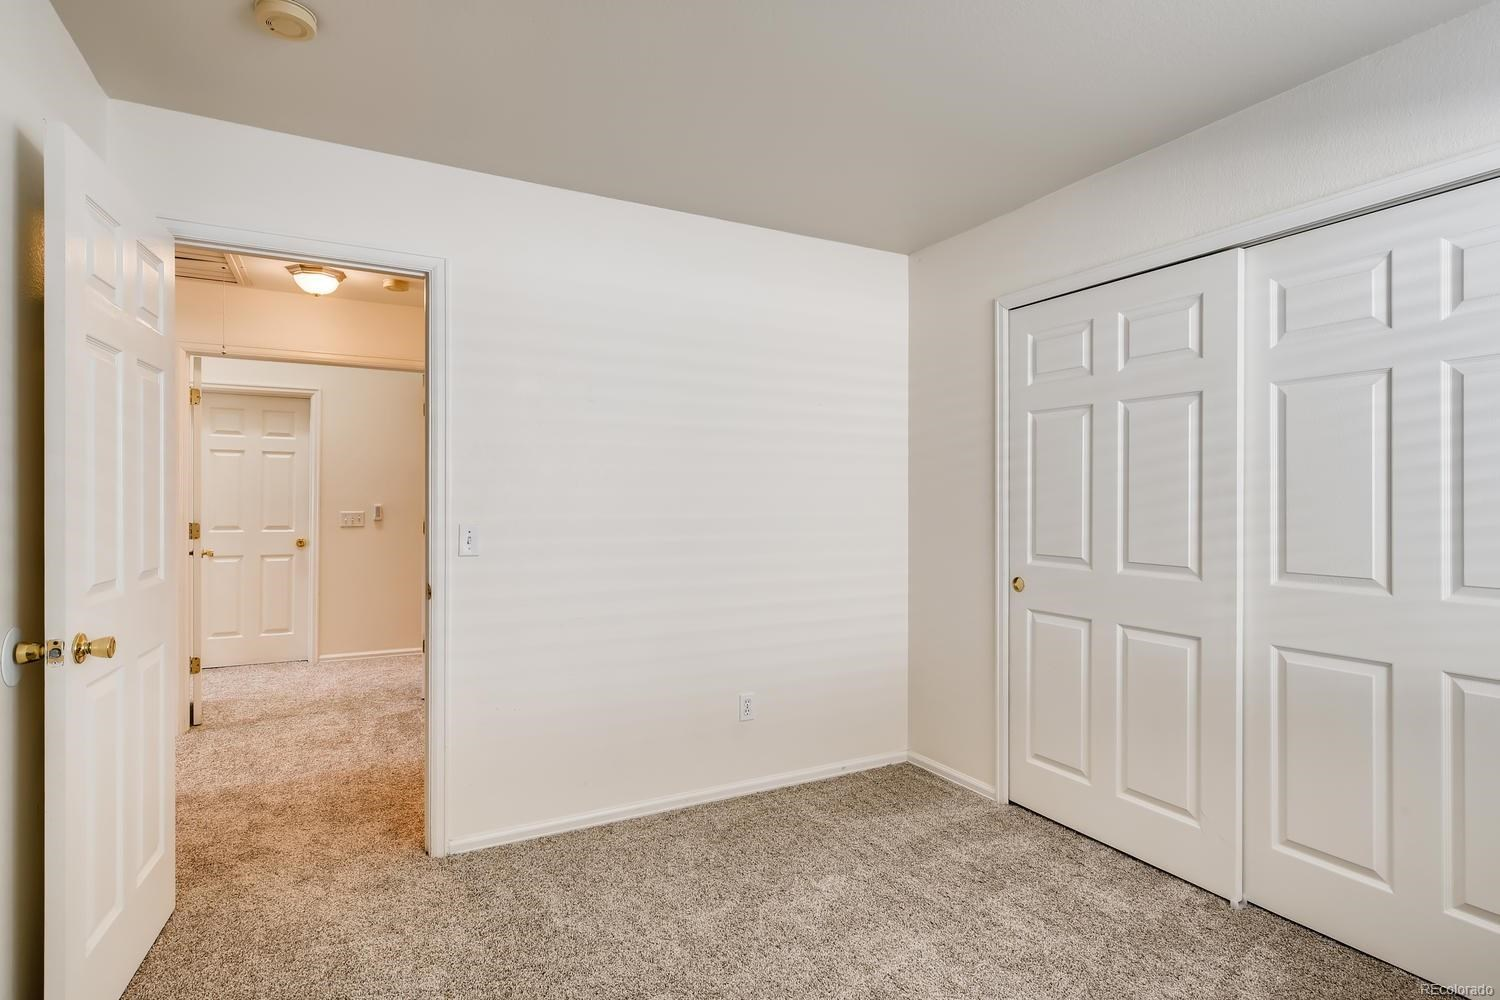 MLS# 7435178 - 23 - 3926 Christy Heights, Colorado Springs, CO 80906